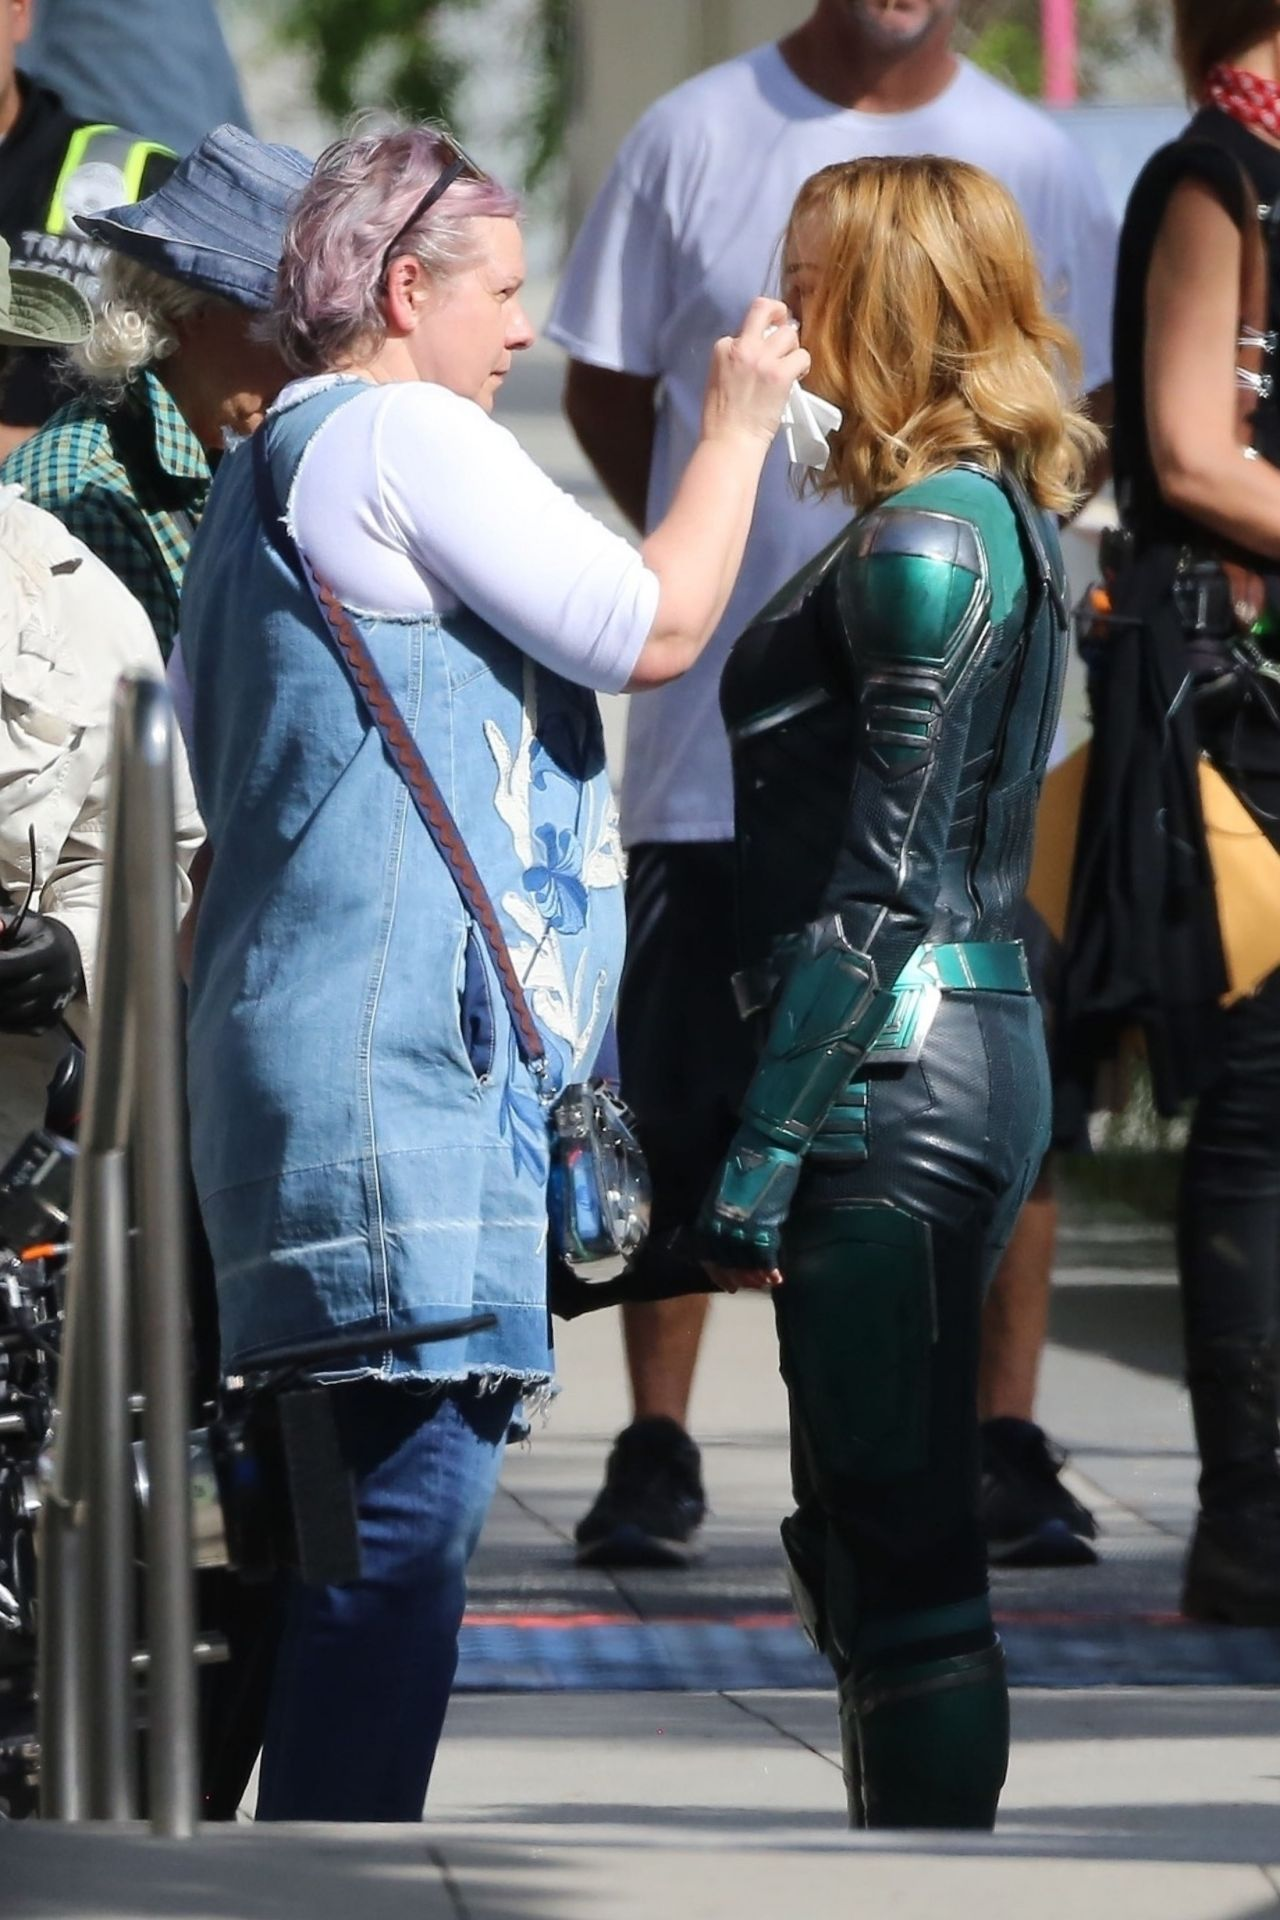 Brie Larson Captain Marvel Movie Set In Los Angeles 05